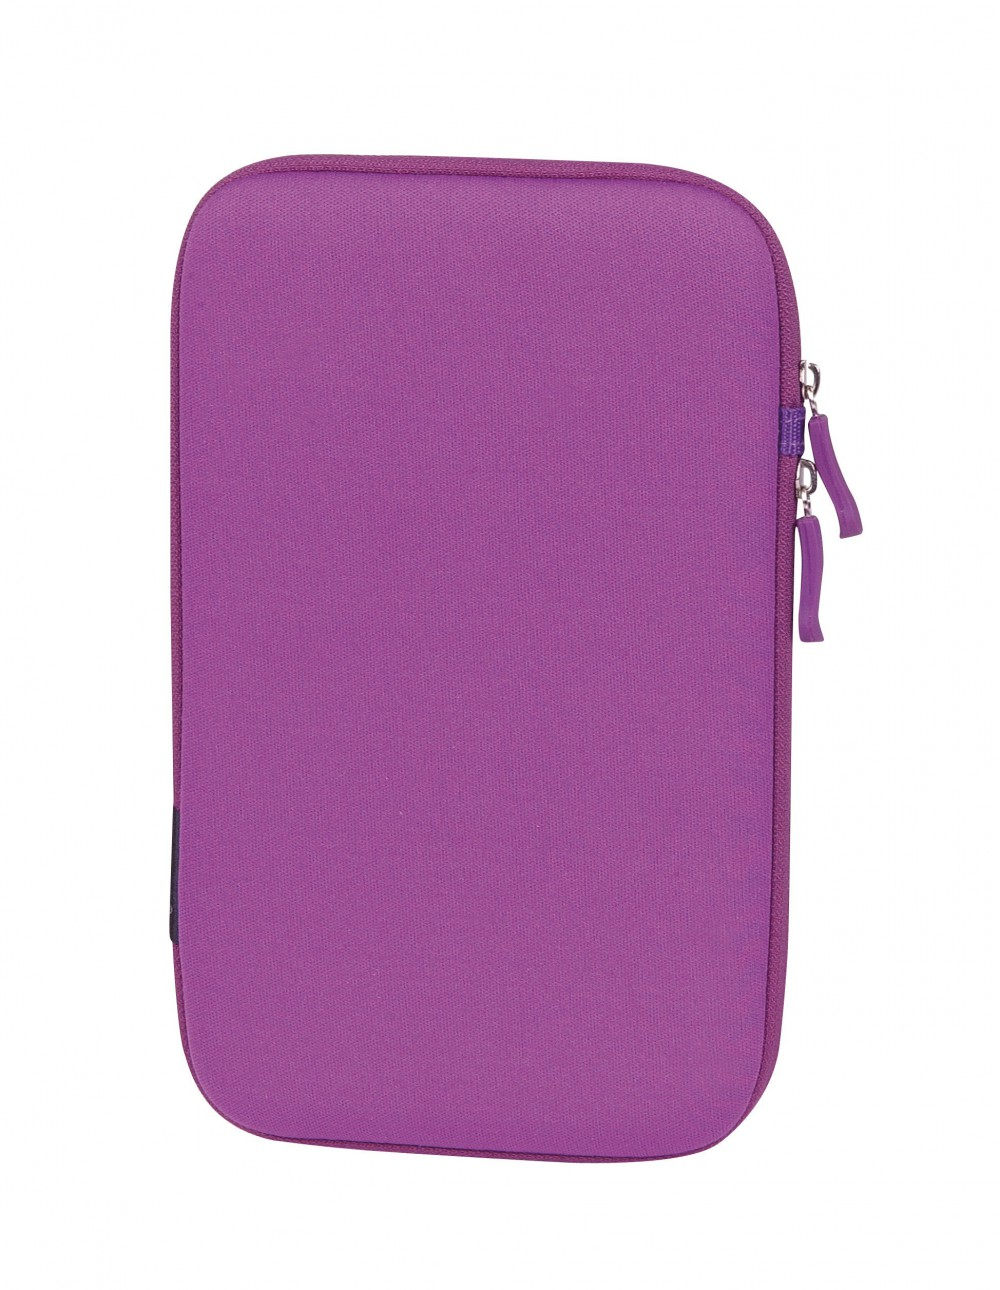 "SLIM COLORS-HOUSSE 7""-VIOLET."